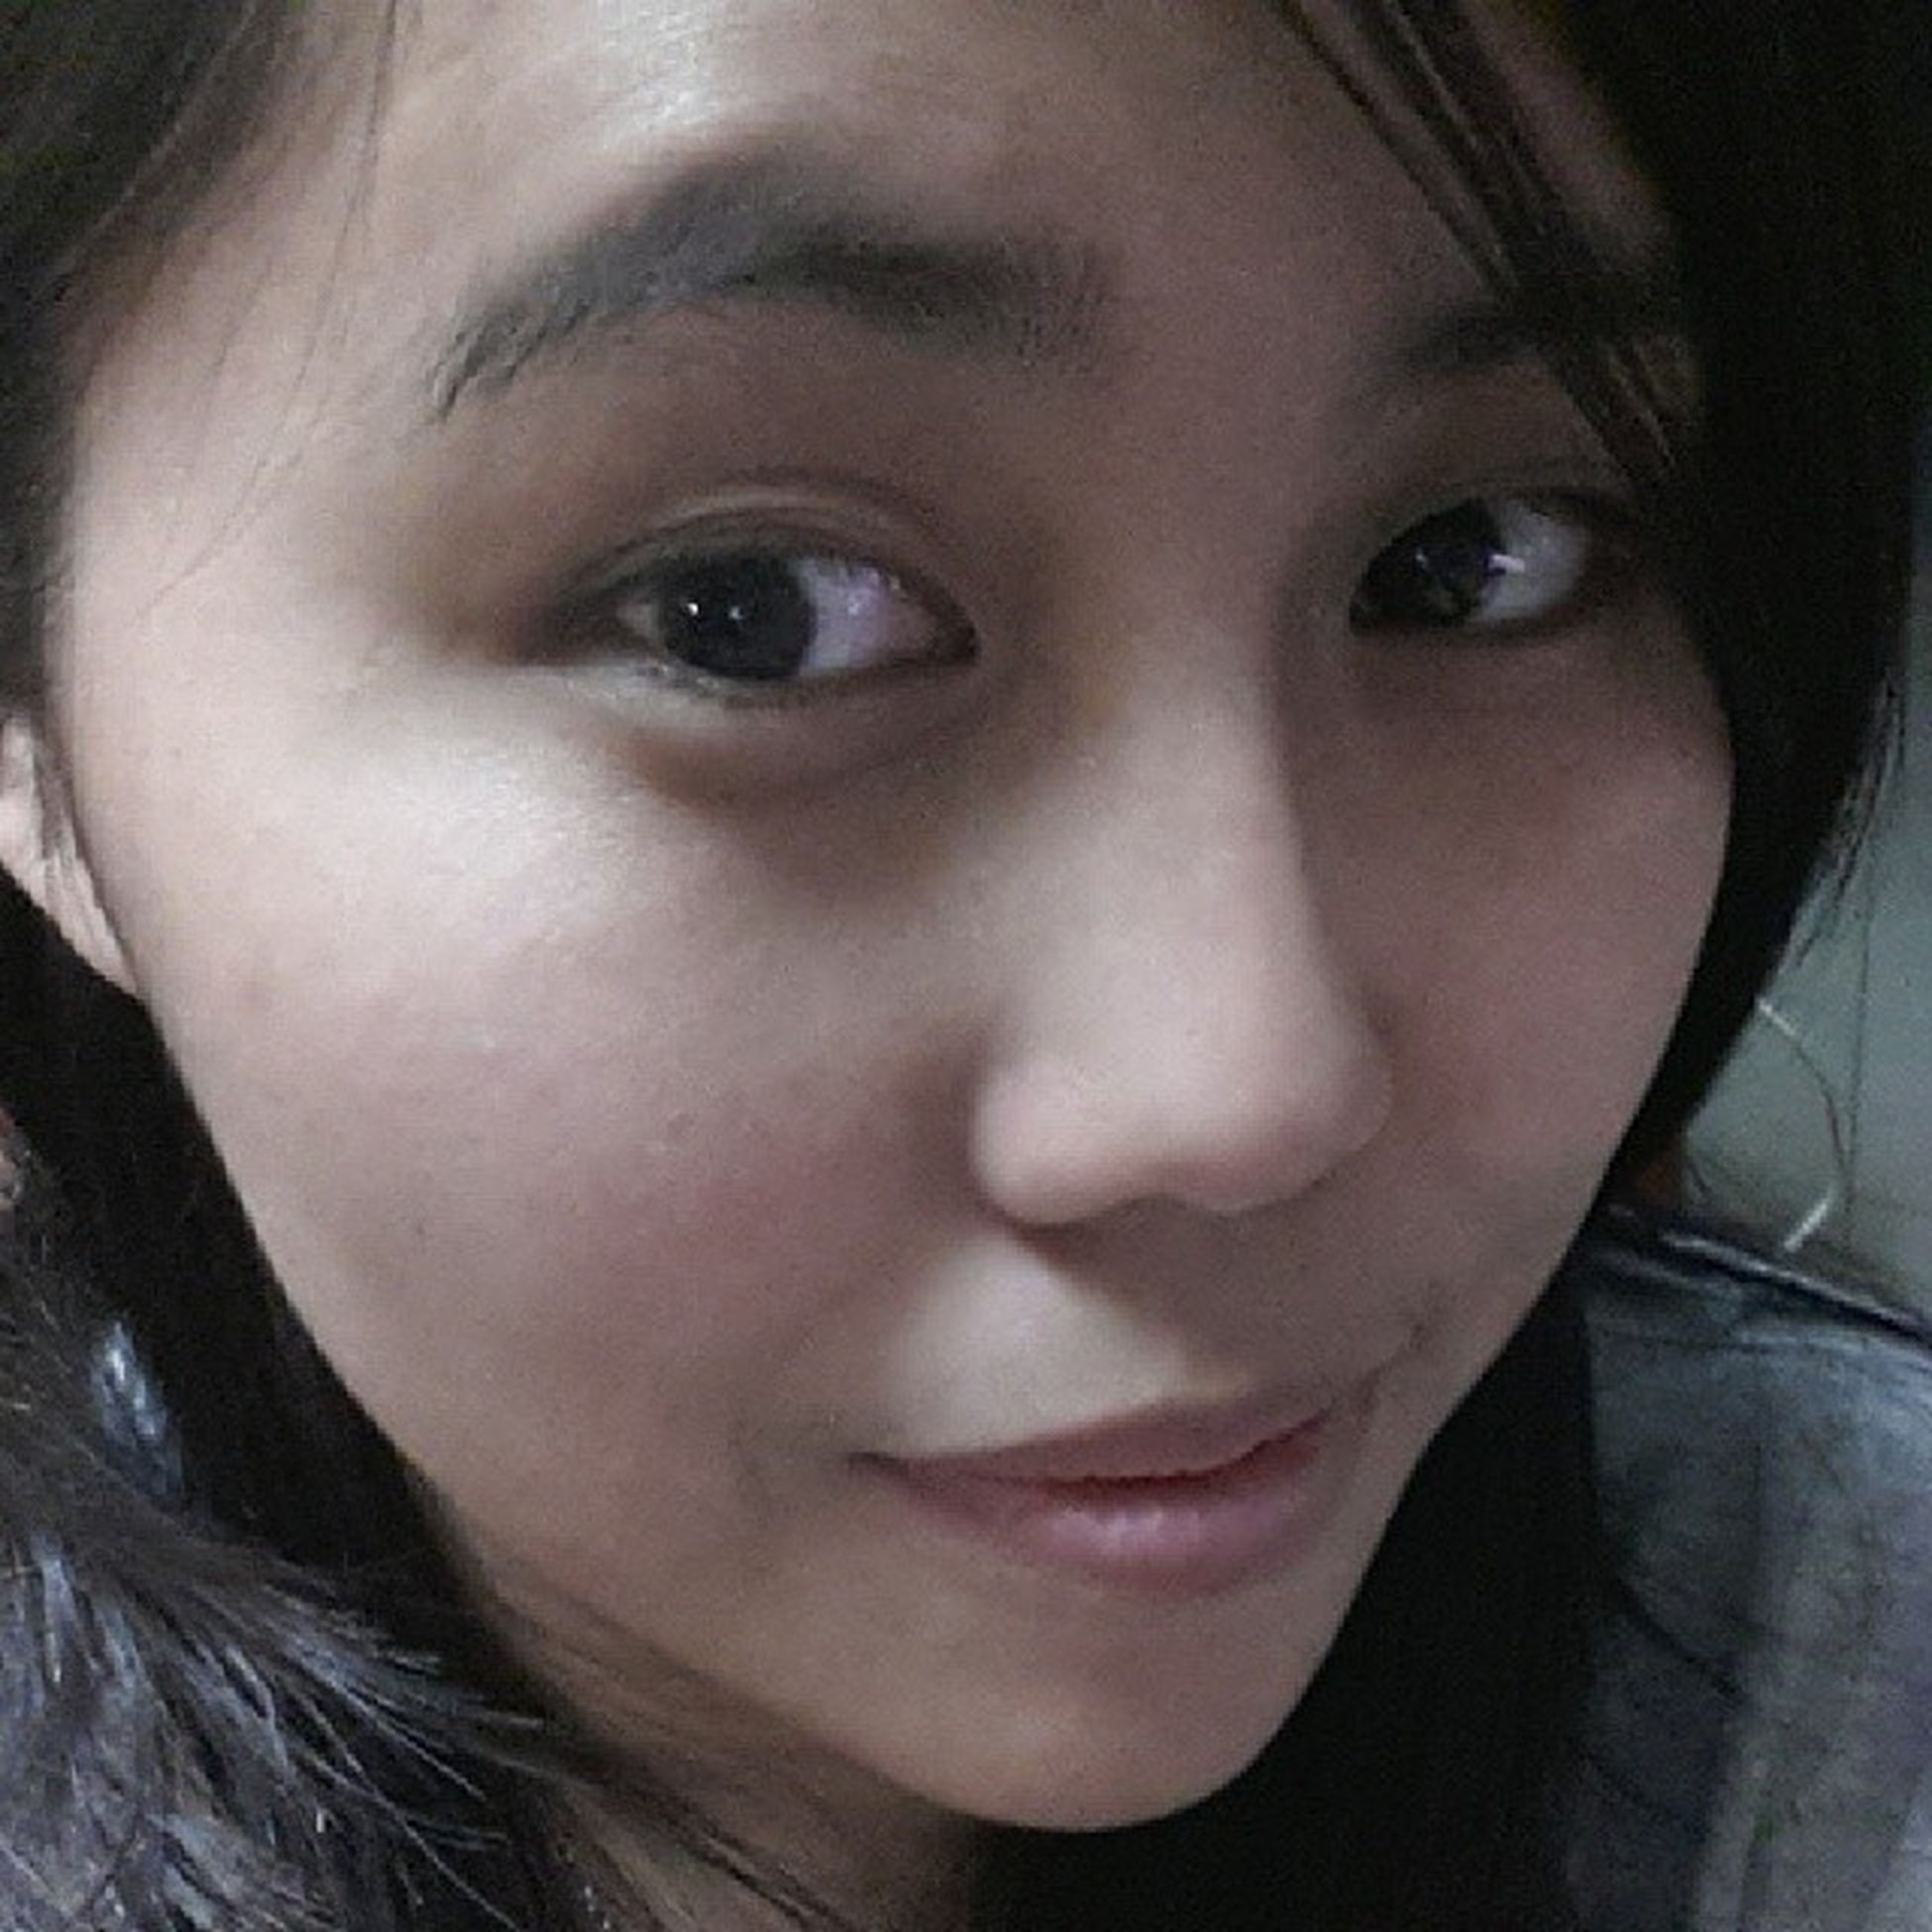 Do I really looked like a foreigner⊙_⊙?